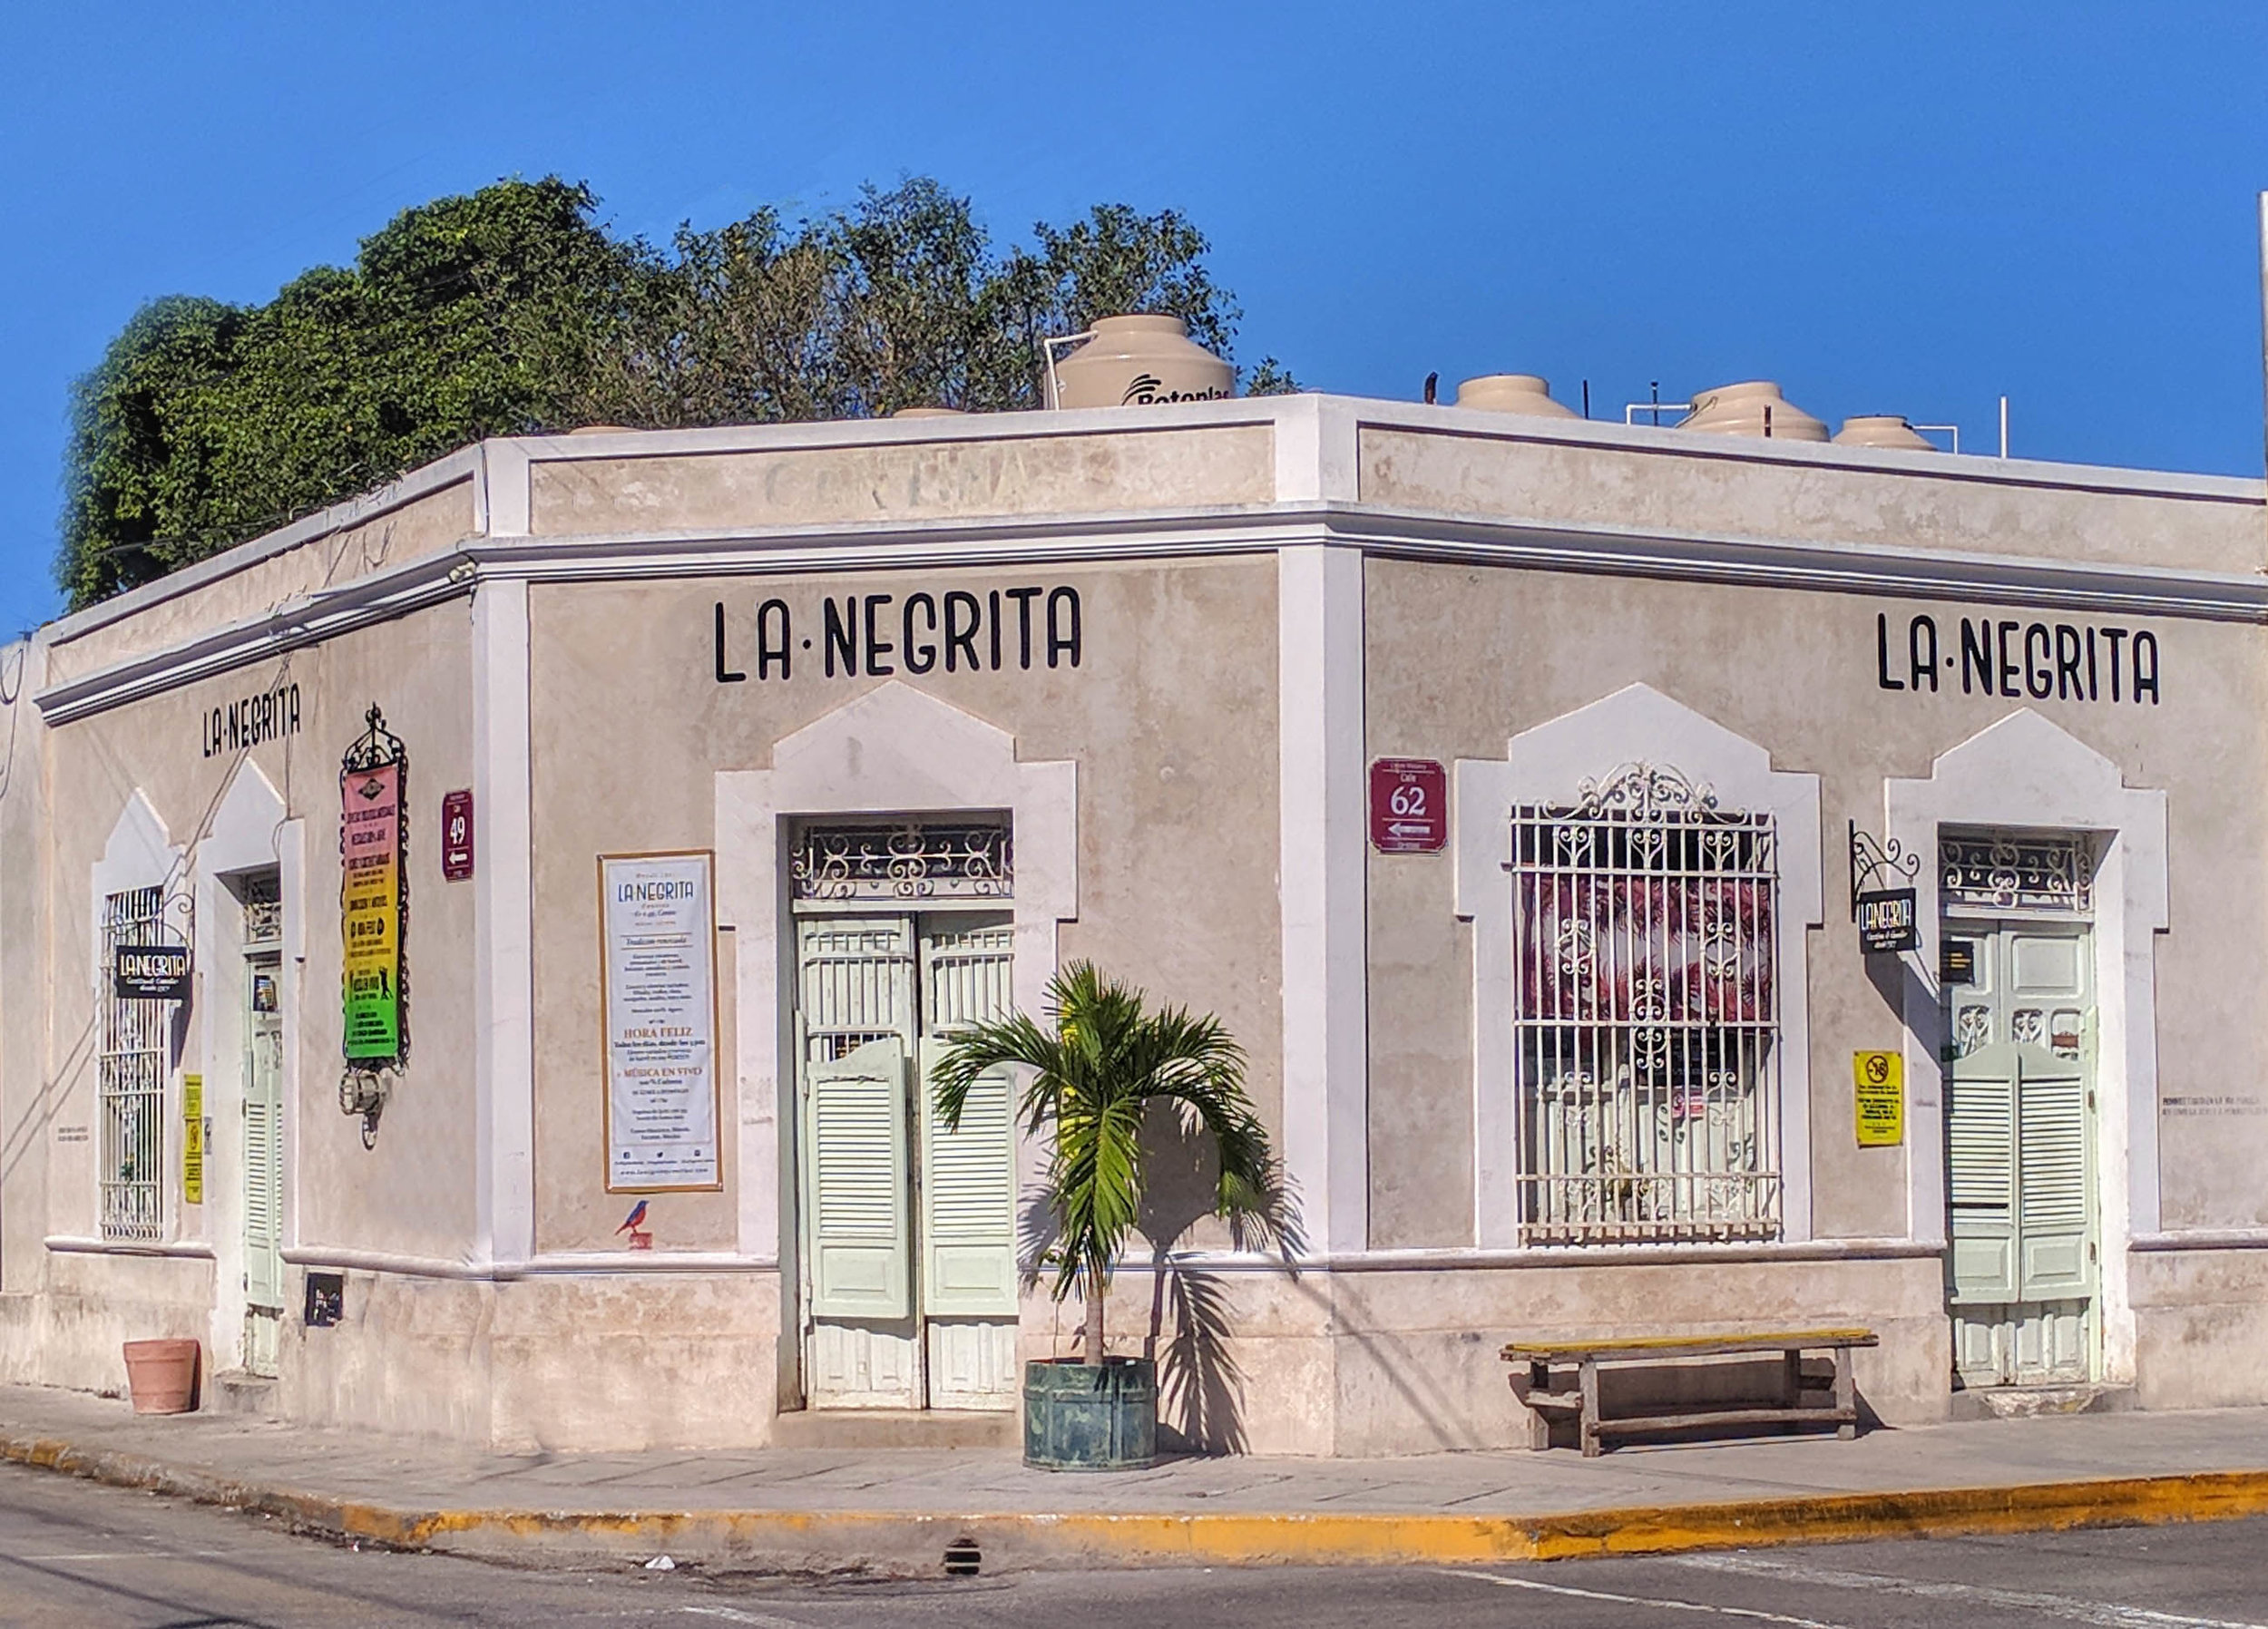 This unassuming building is filled with Cuban music and dancing every night.